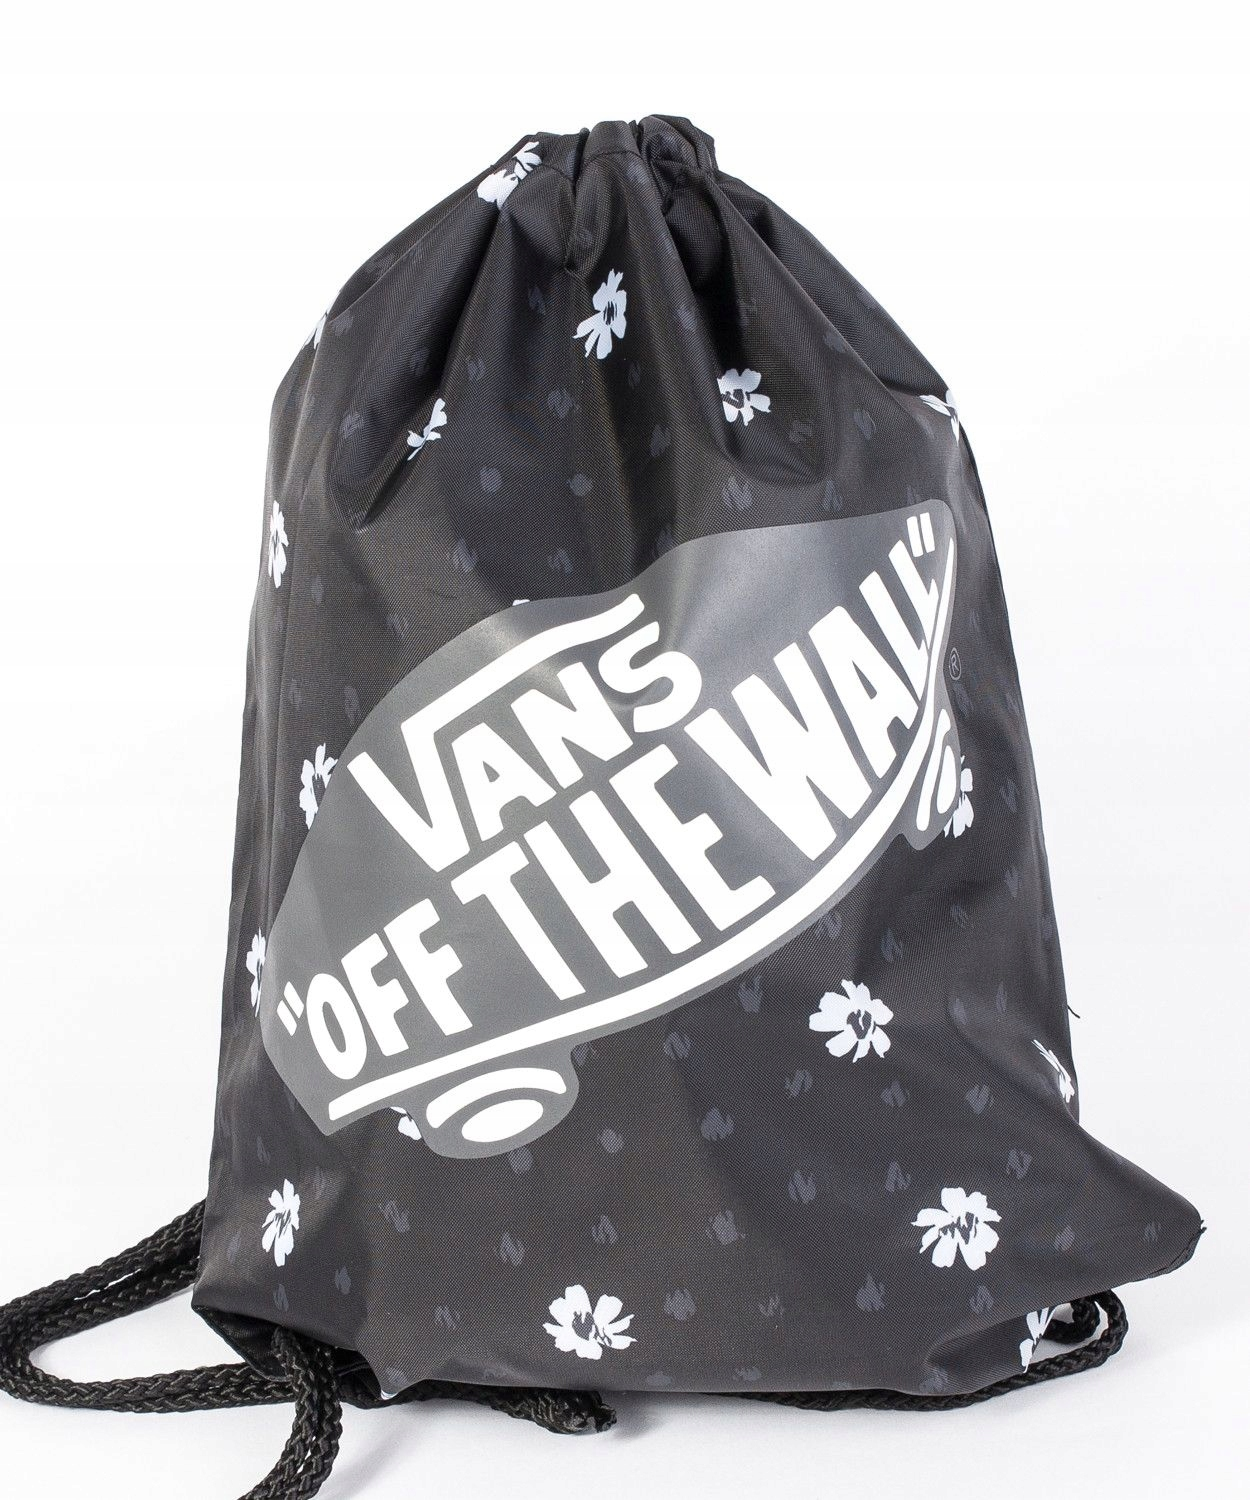 07a3be1d5c10a Worek Vans BENCHED BAG Black Abstract VN000SUFYDN1 - 7515154694 ...